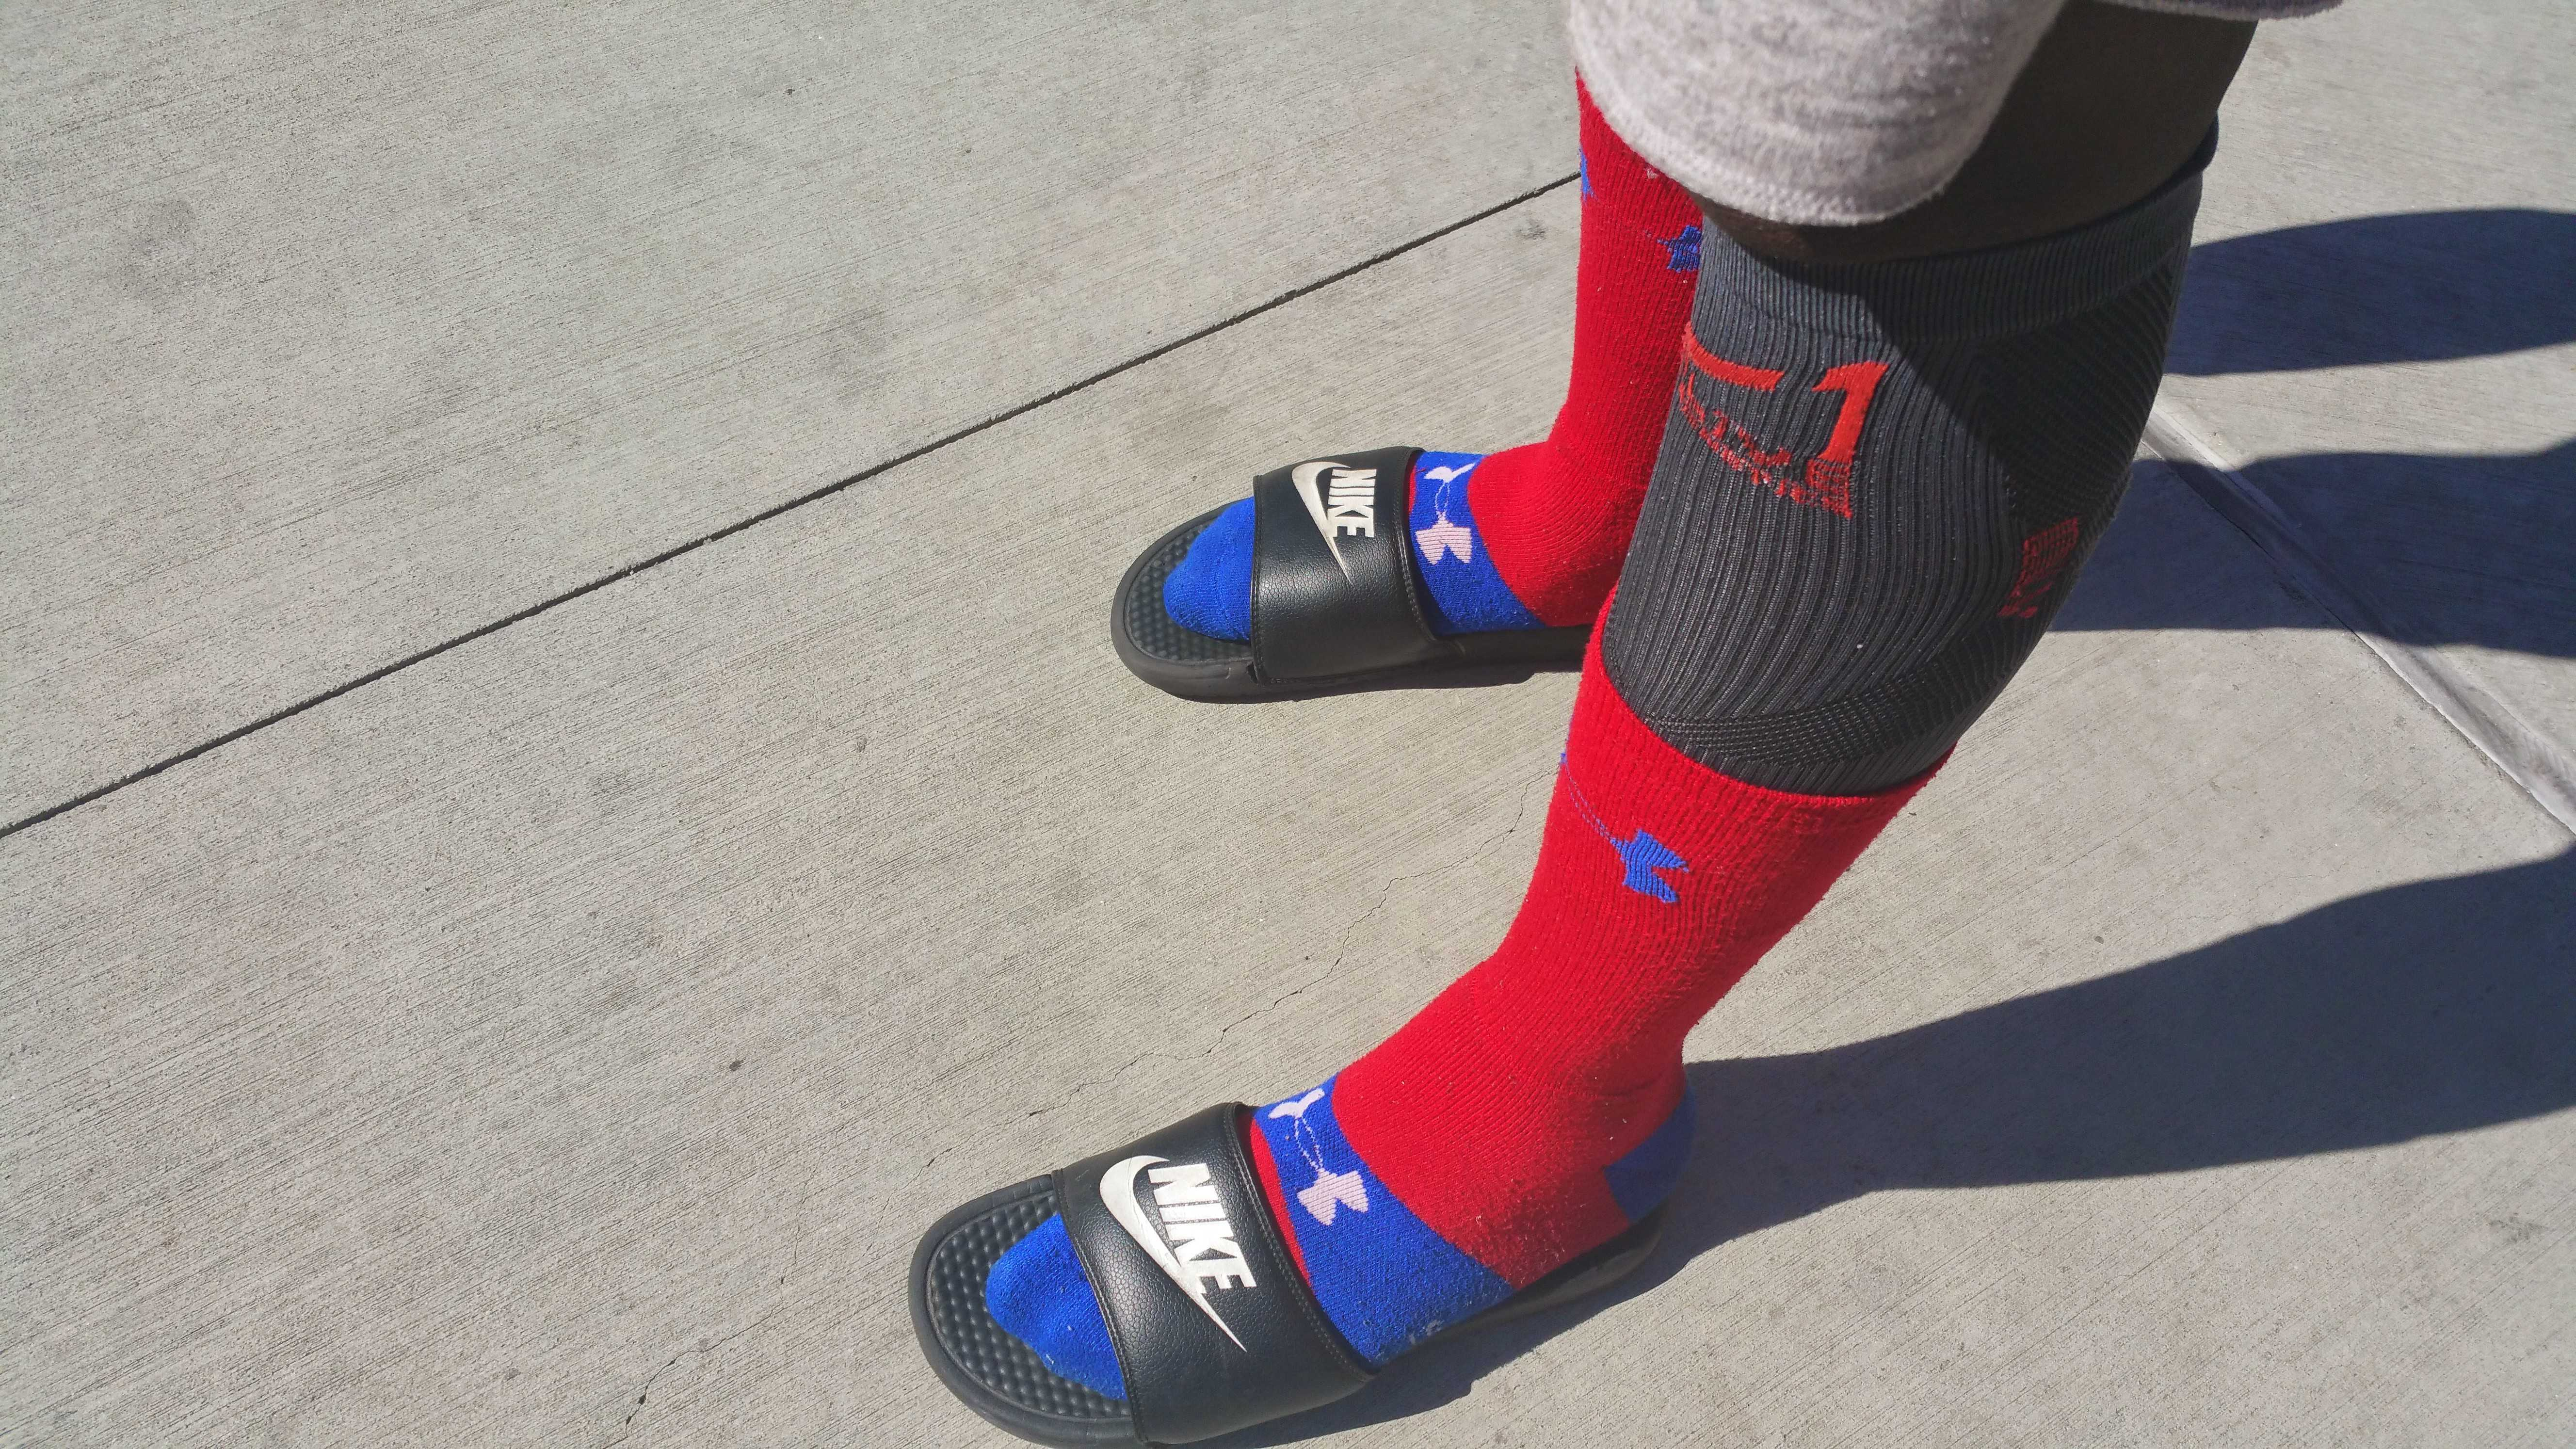 8d1d5a6610c3 Socks and sandals make their stand for both fashion statements and ...